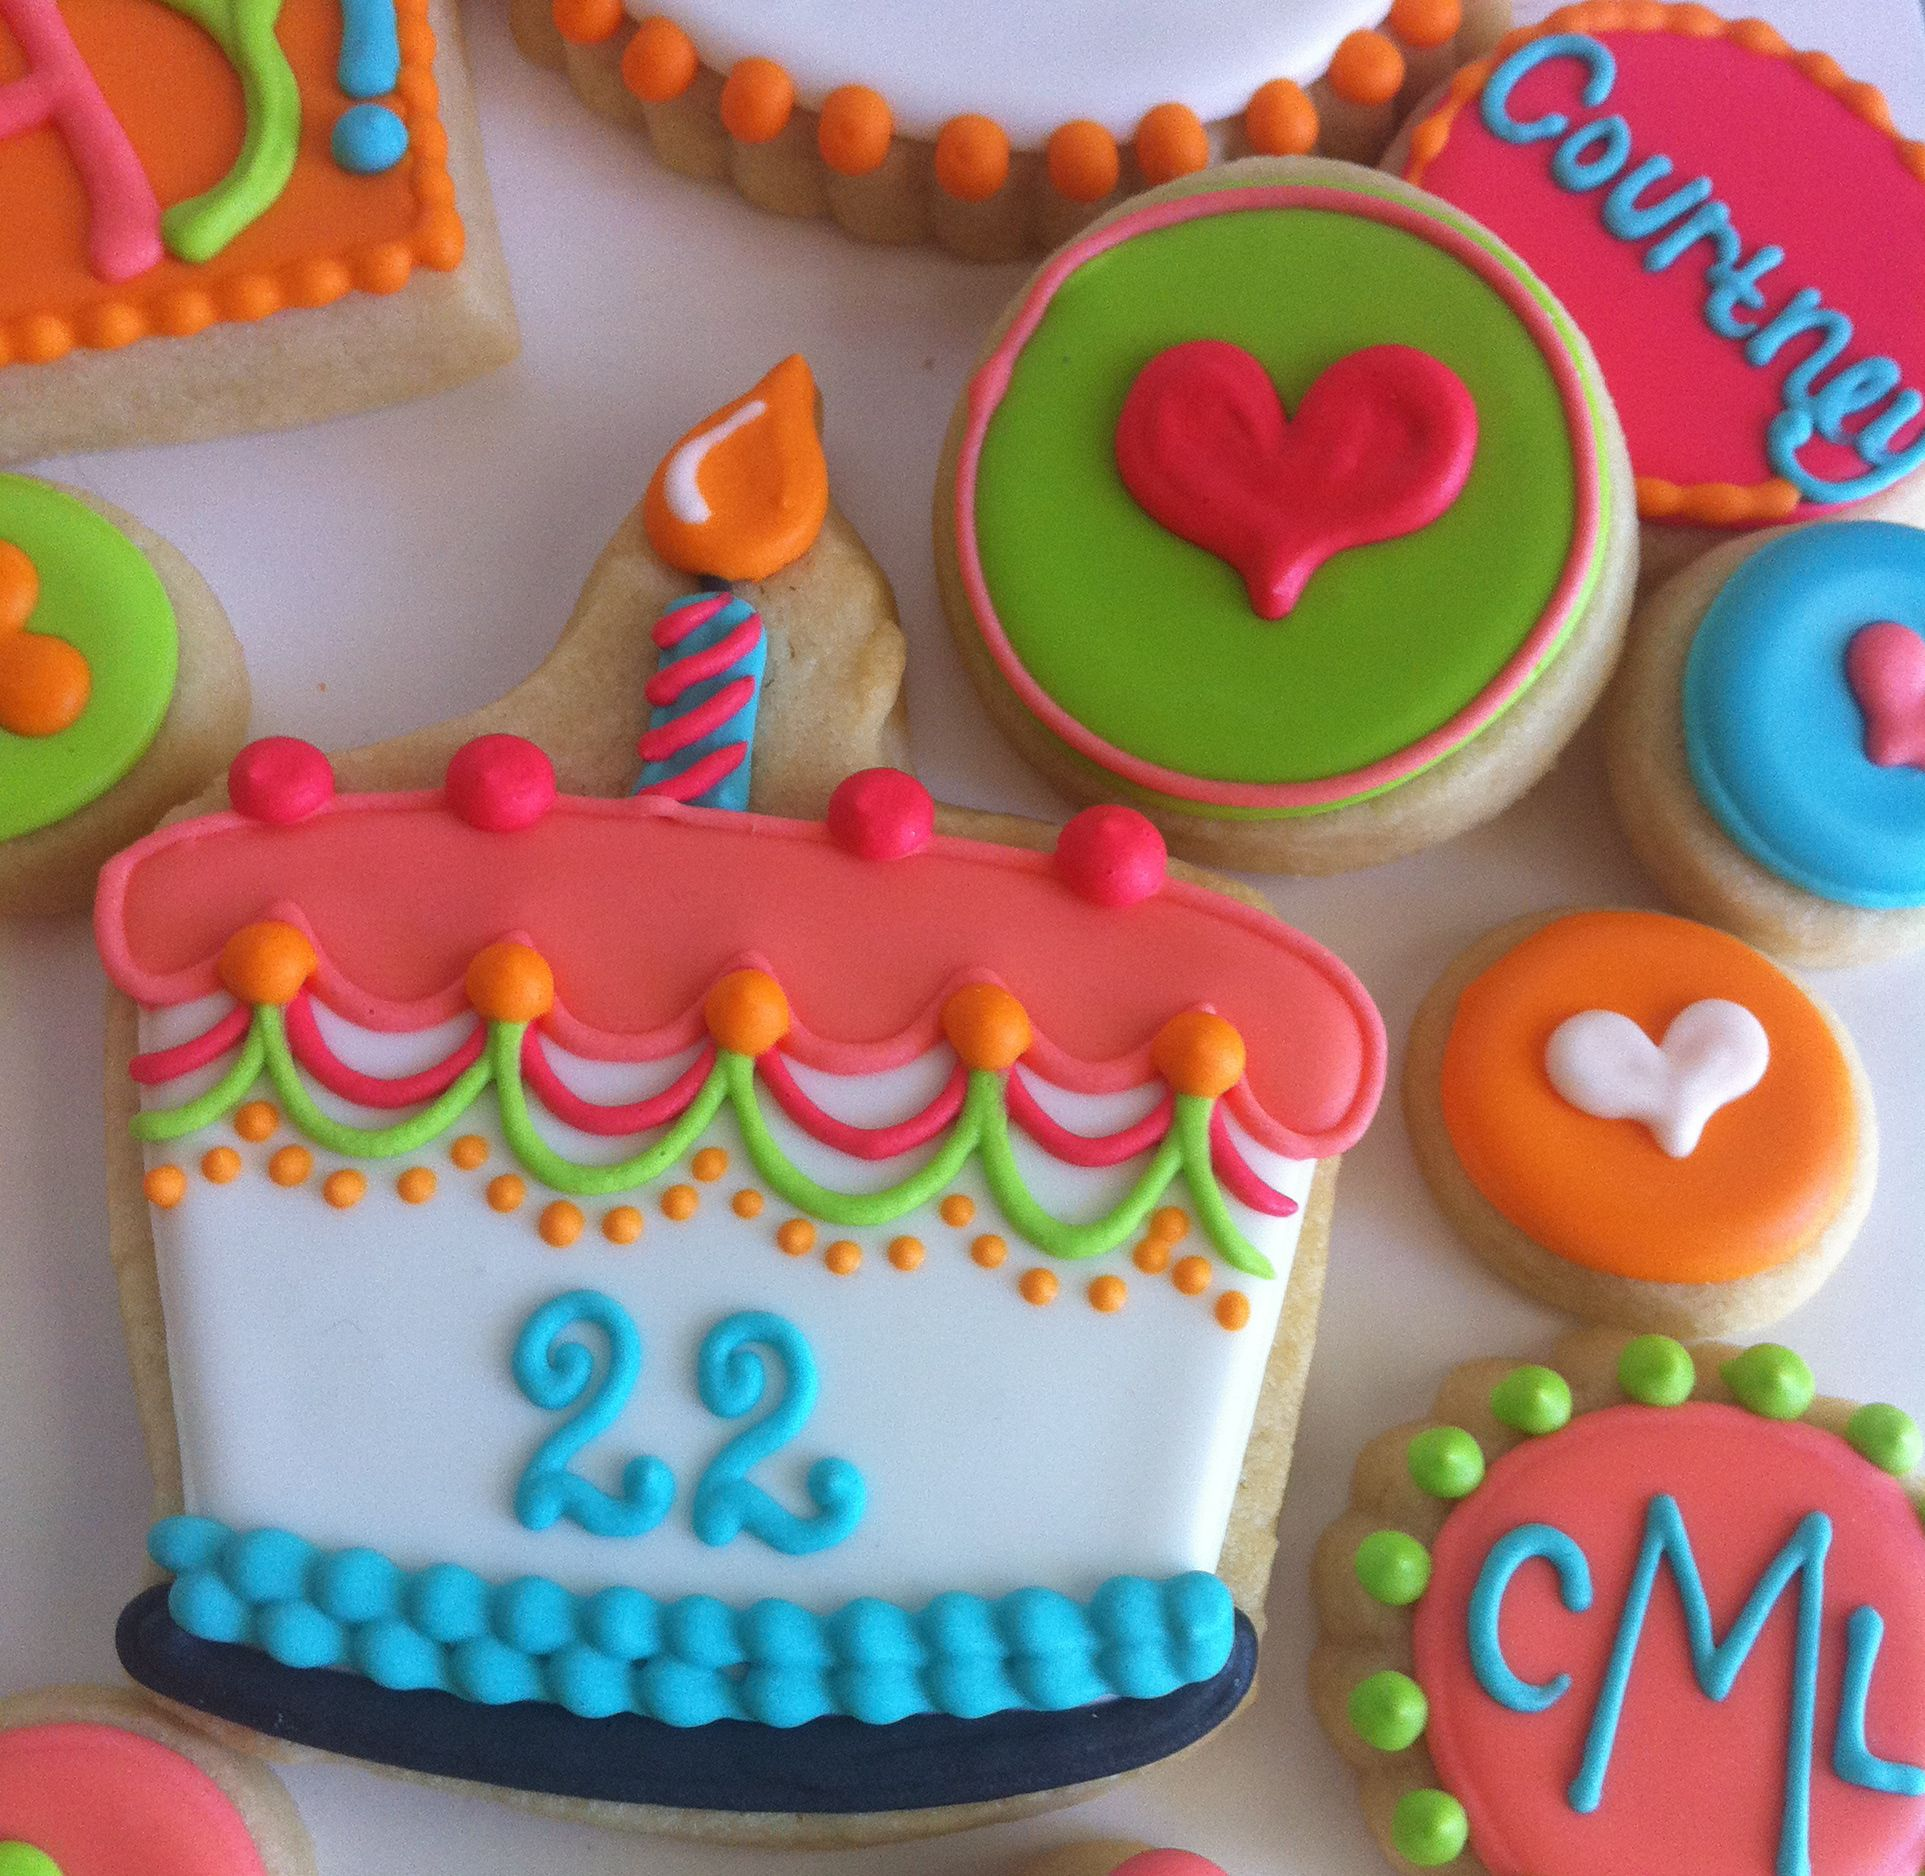 22nd Birthday Cake Designs: Cute 22nd Birthday Cake Ideas 104327